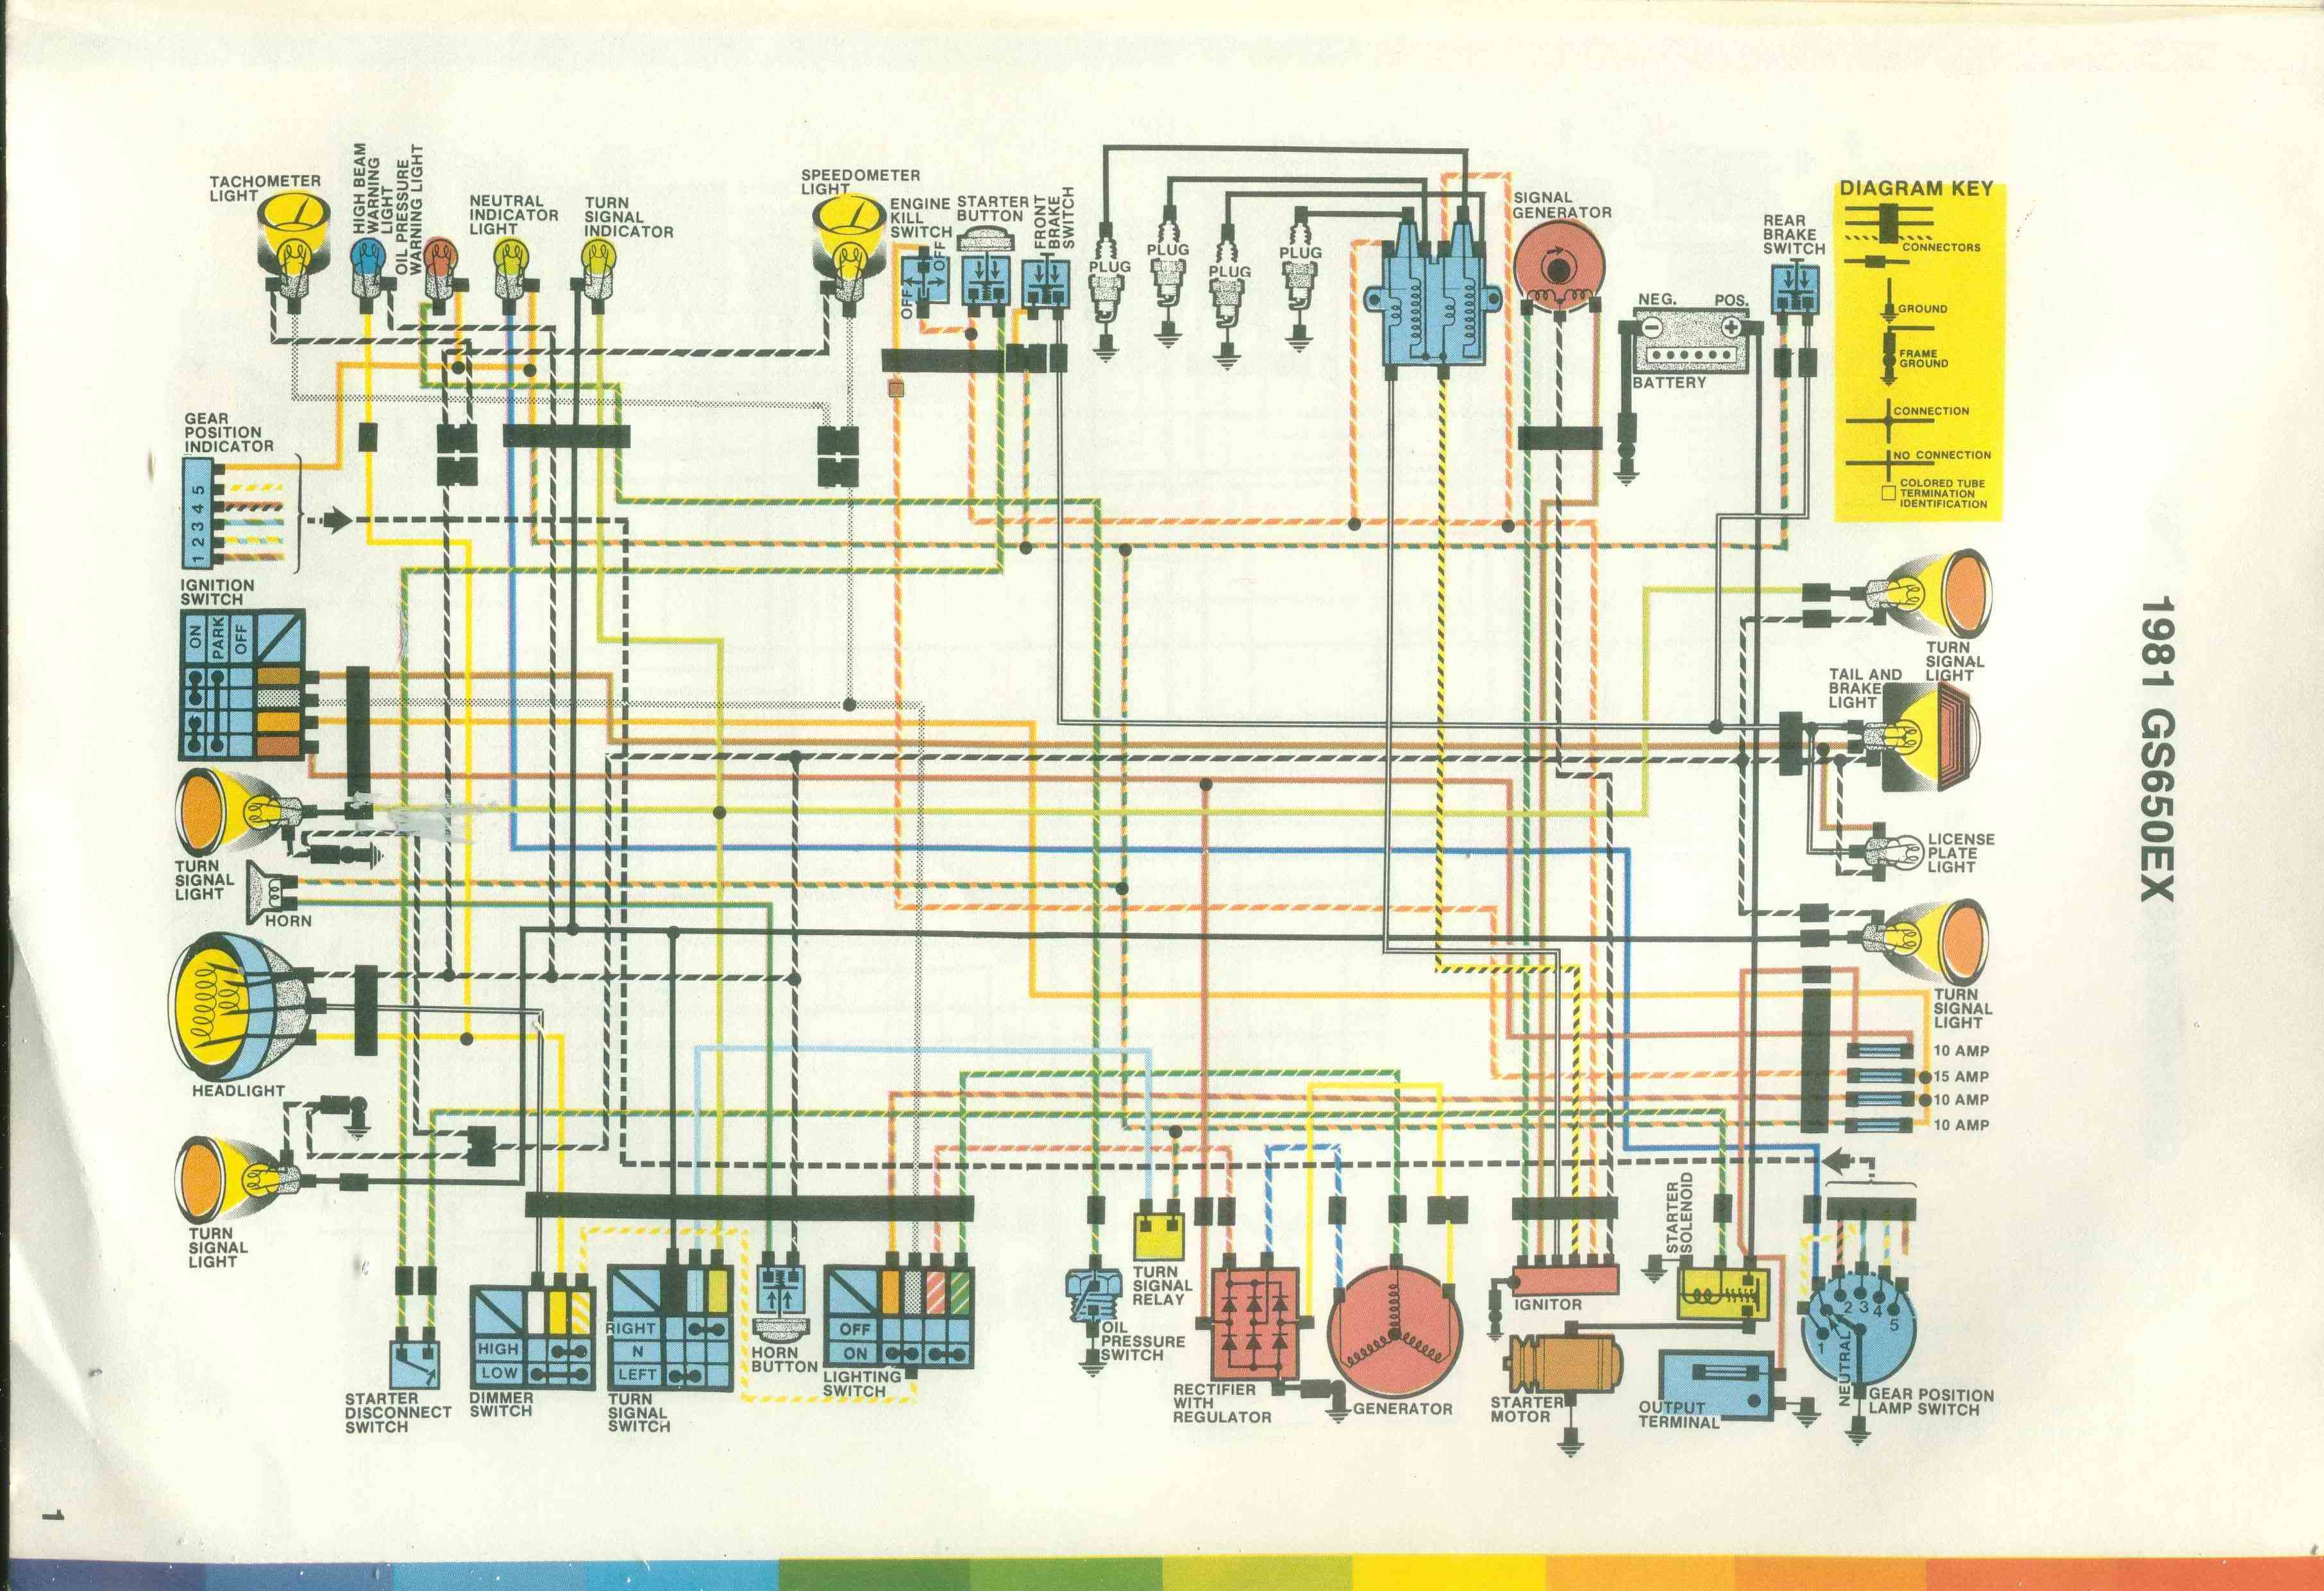 Suzuki Swift 2007 Wiring Diagram likewise Wire Radio Without Harness In A Chevy Metro 99 furthermore 1992 Geo Tracker Stereo Wiring Diagram furthermore 2001 Camry Wiring Diagram in addition 1996 Geo Prizm Fuse Box Diagram. on geo metro stereo wiring diagram